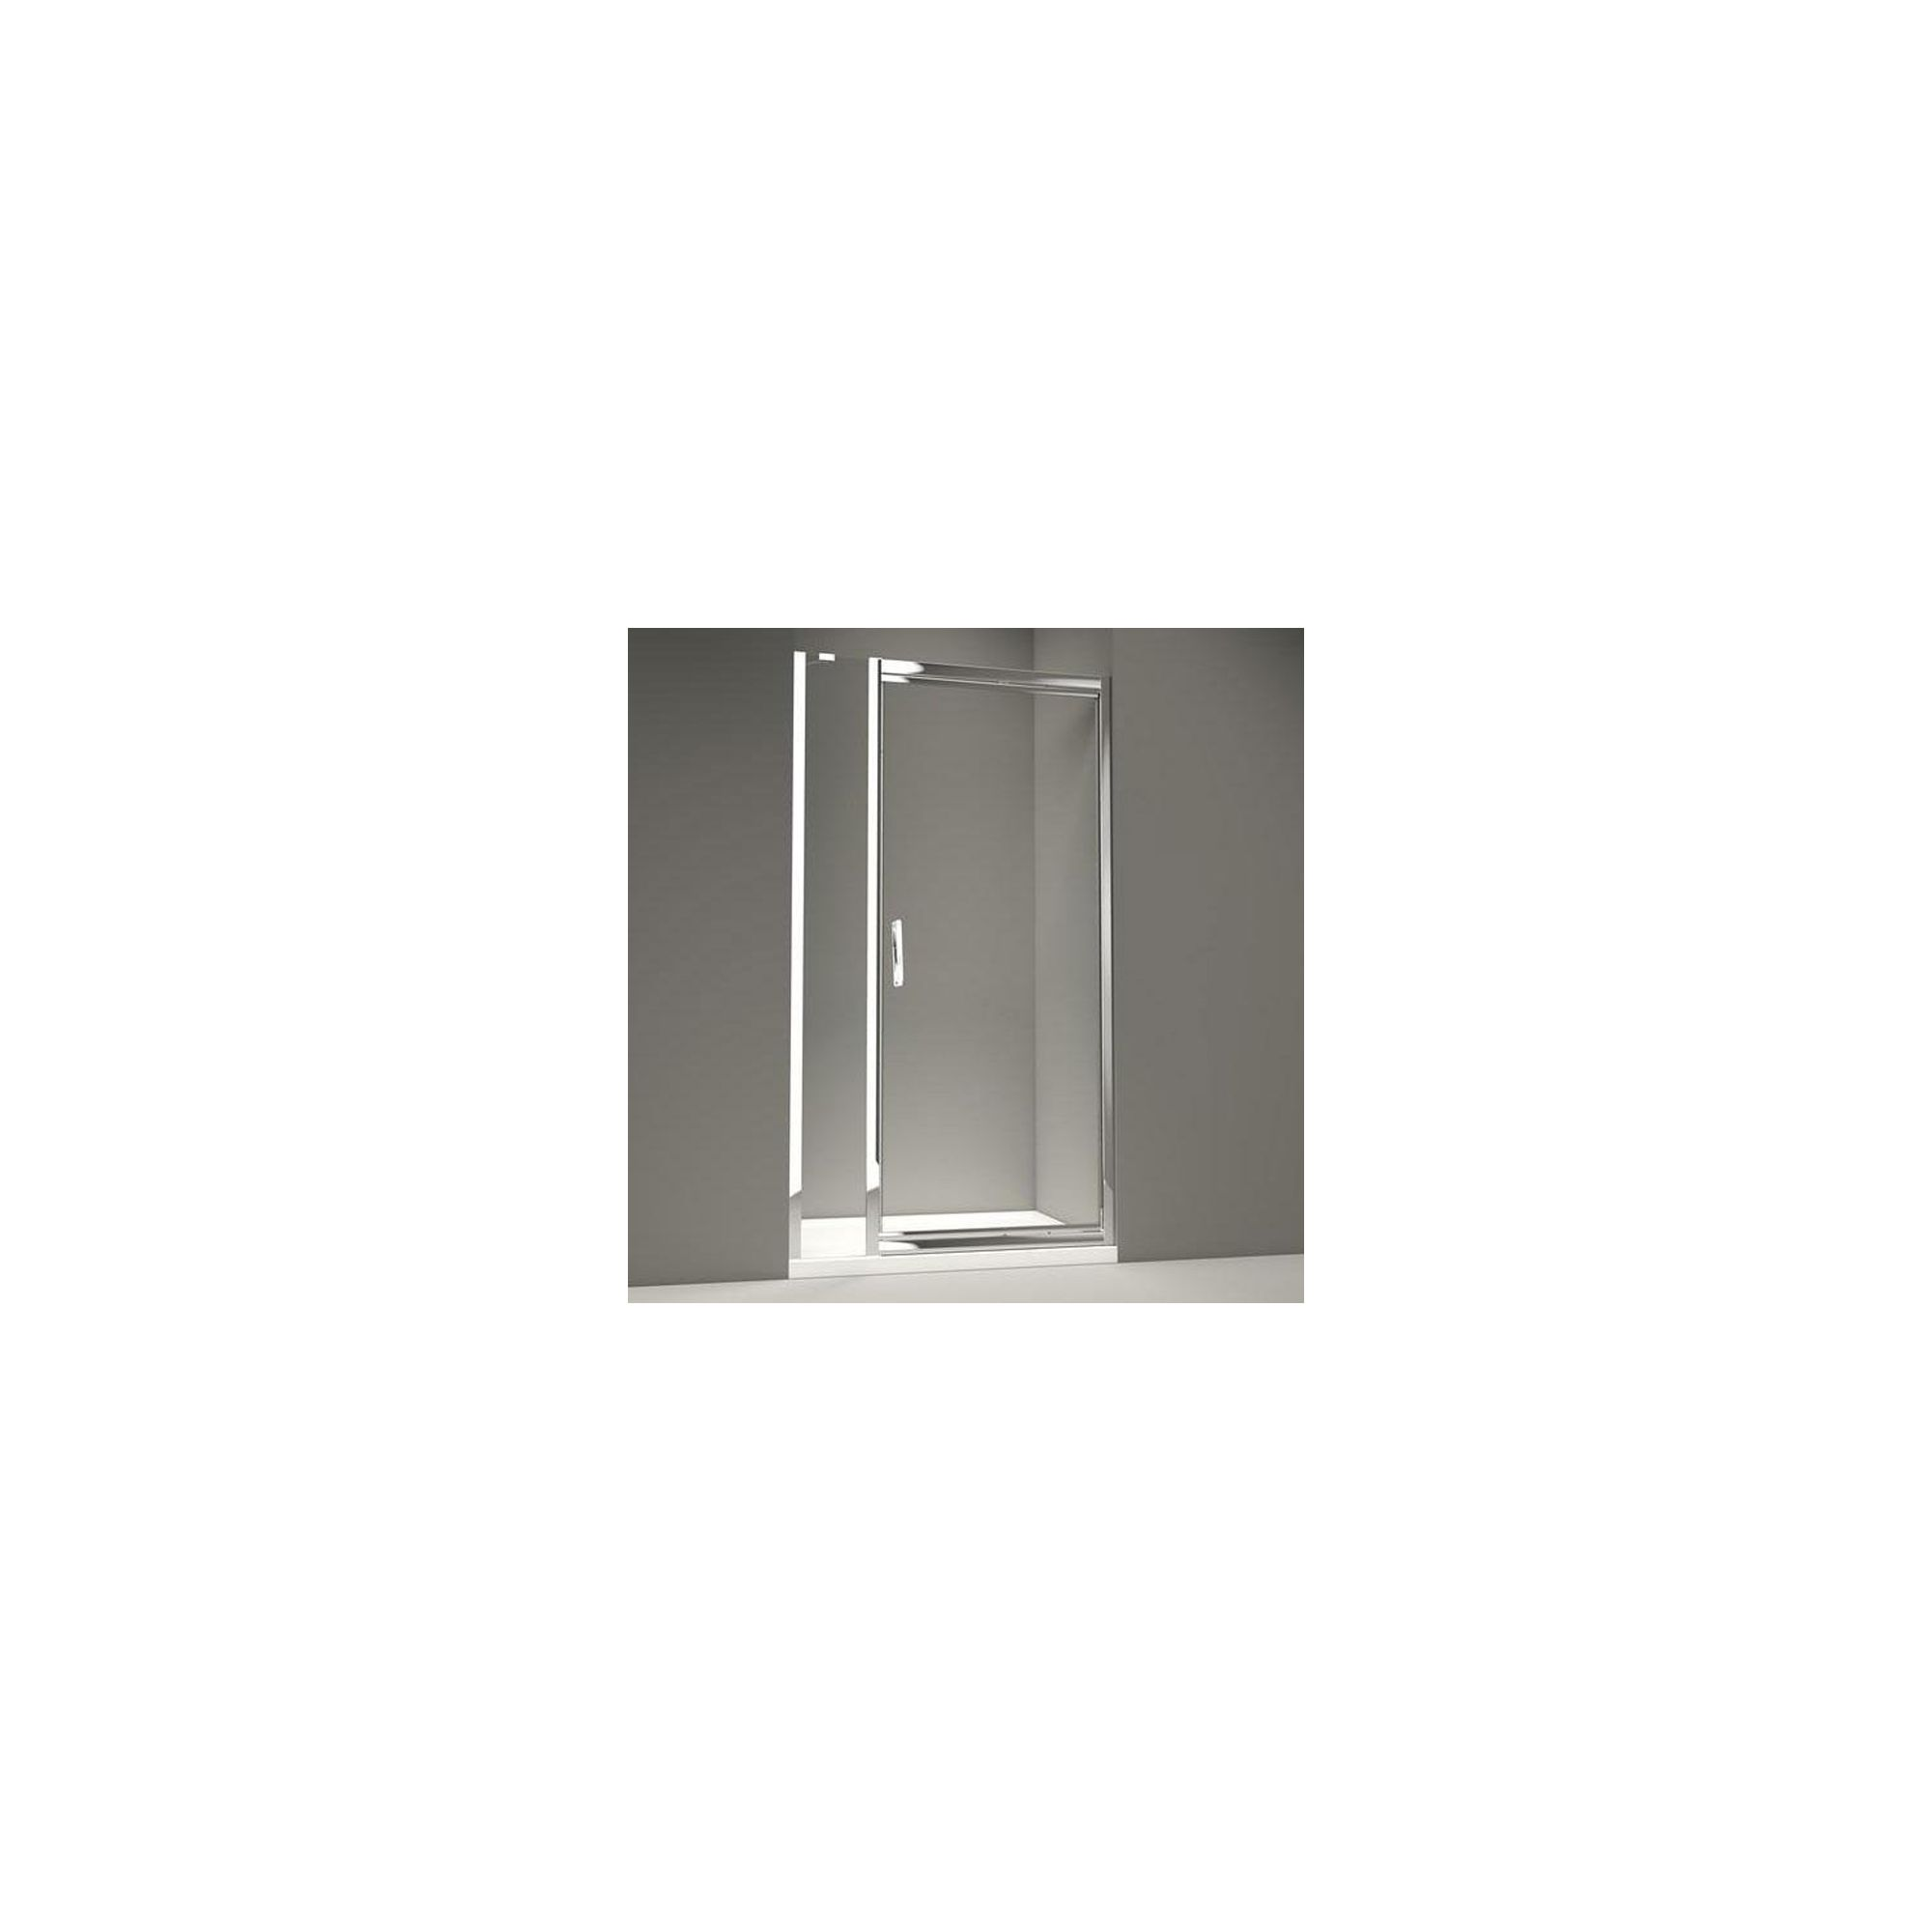 Merlyn Series 8 Inline Infold Shower Door, 1200mm Wide, Chrome Frame, 8mm Glass at Tesco Direct